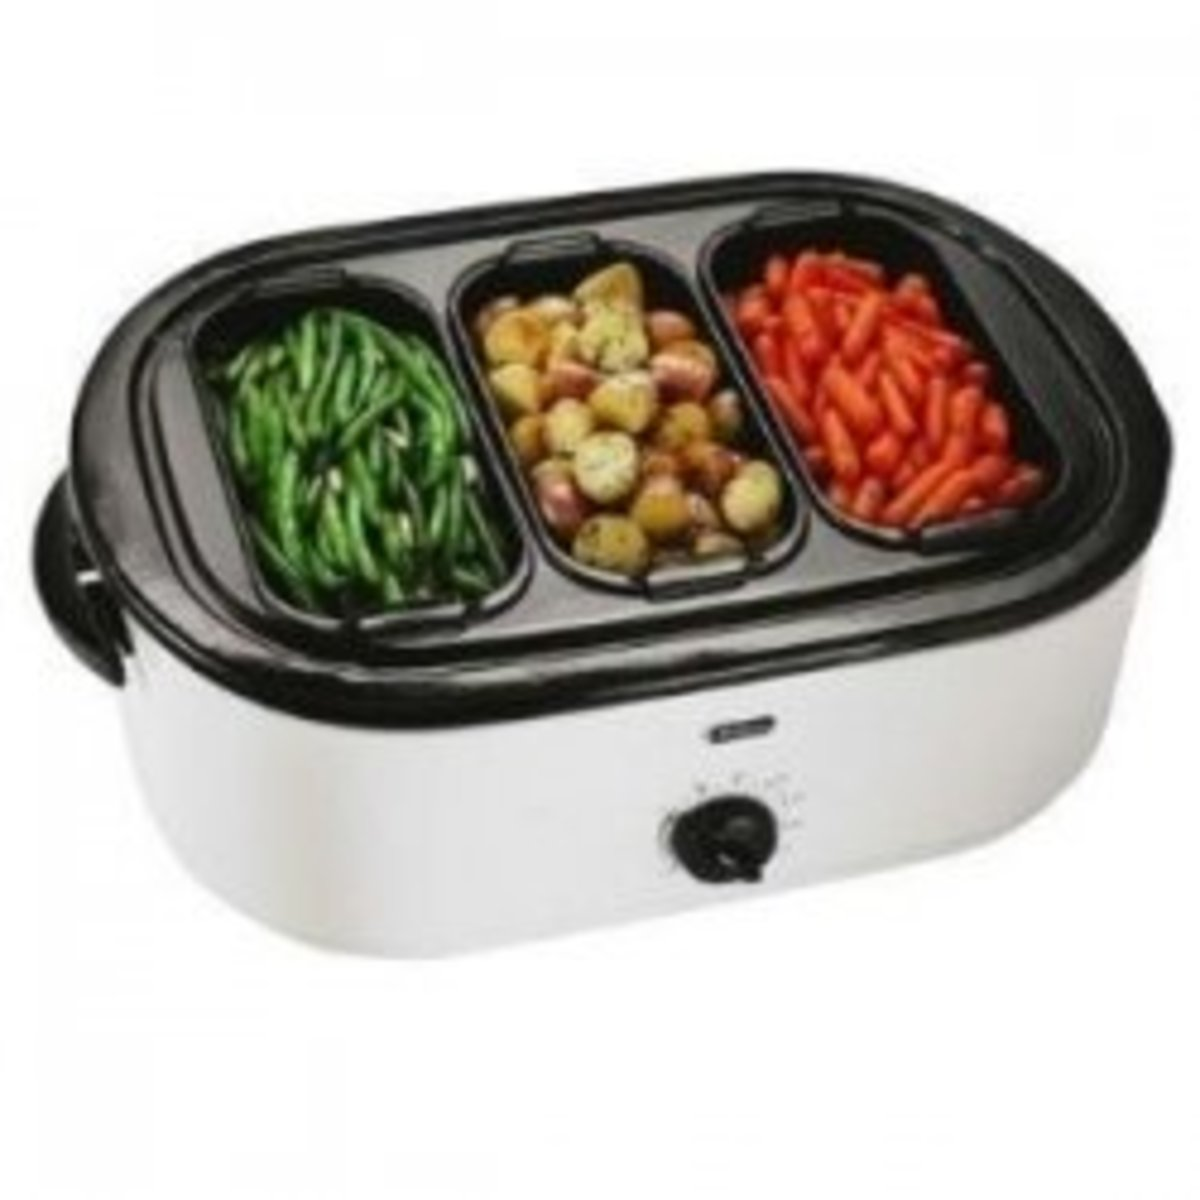 Oster 18 Quart Electric Roaster